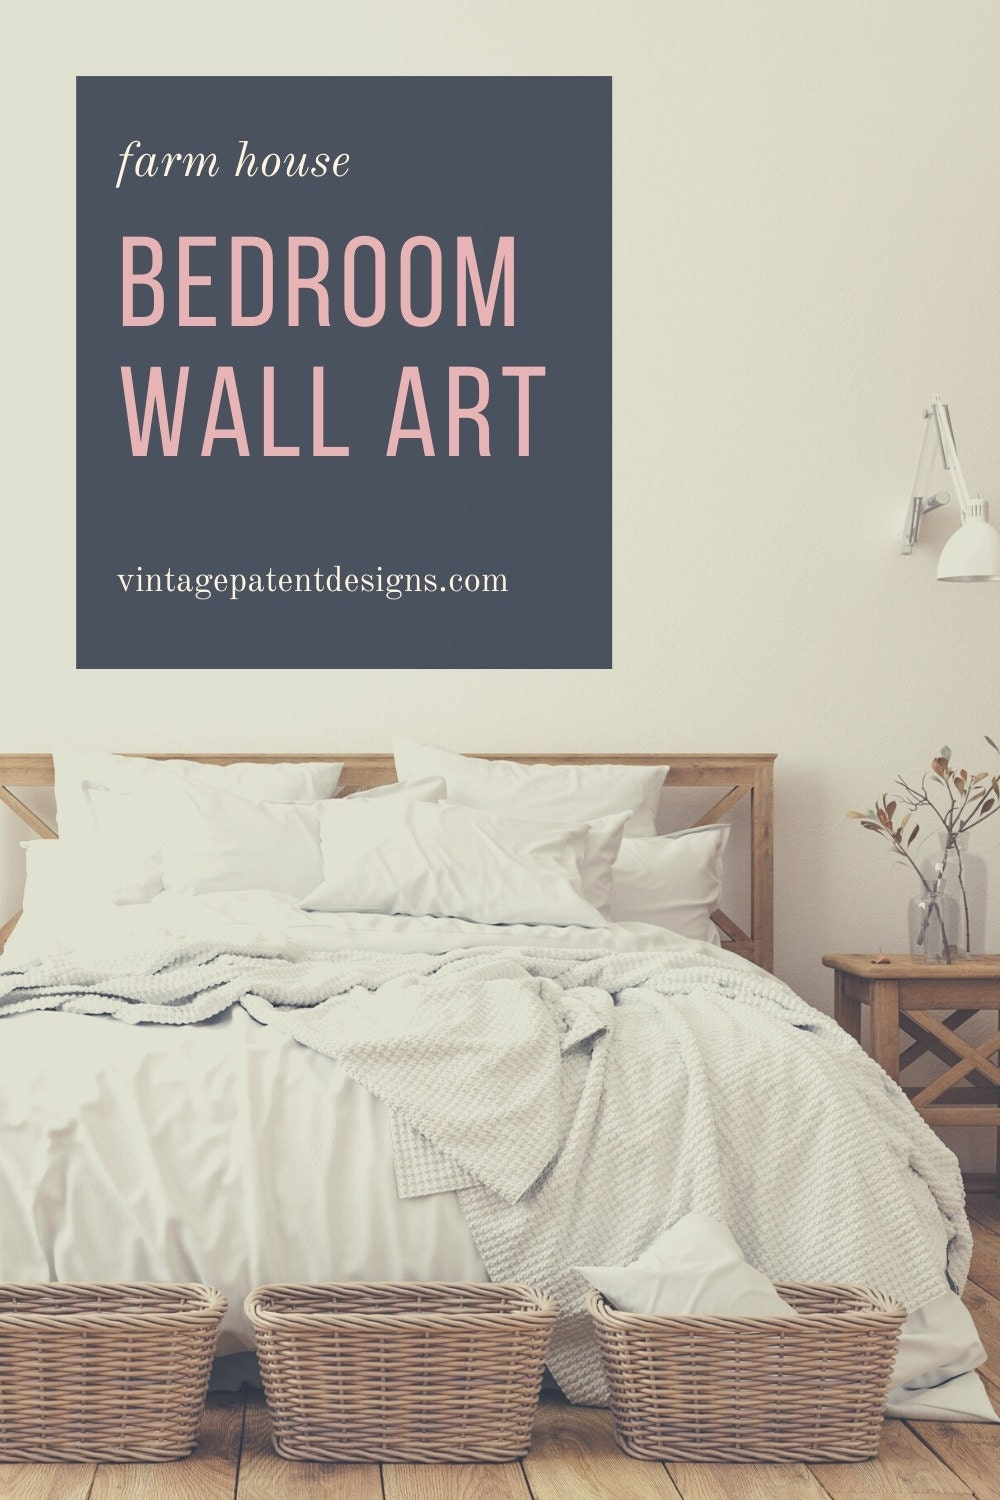 Bedroom Wall Art for home decor